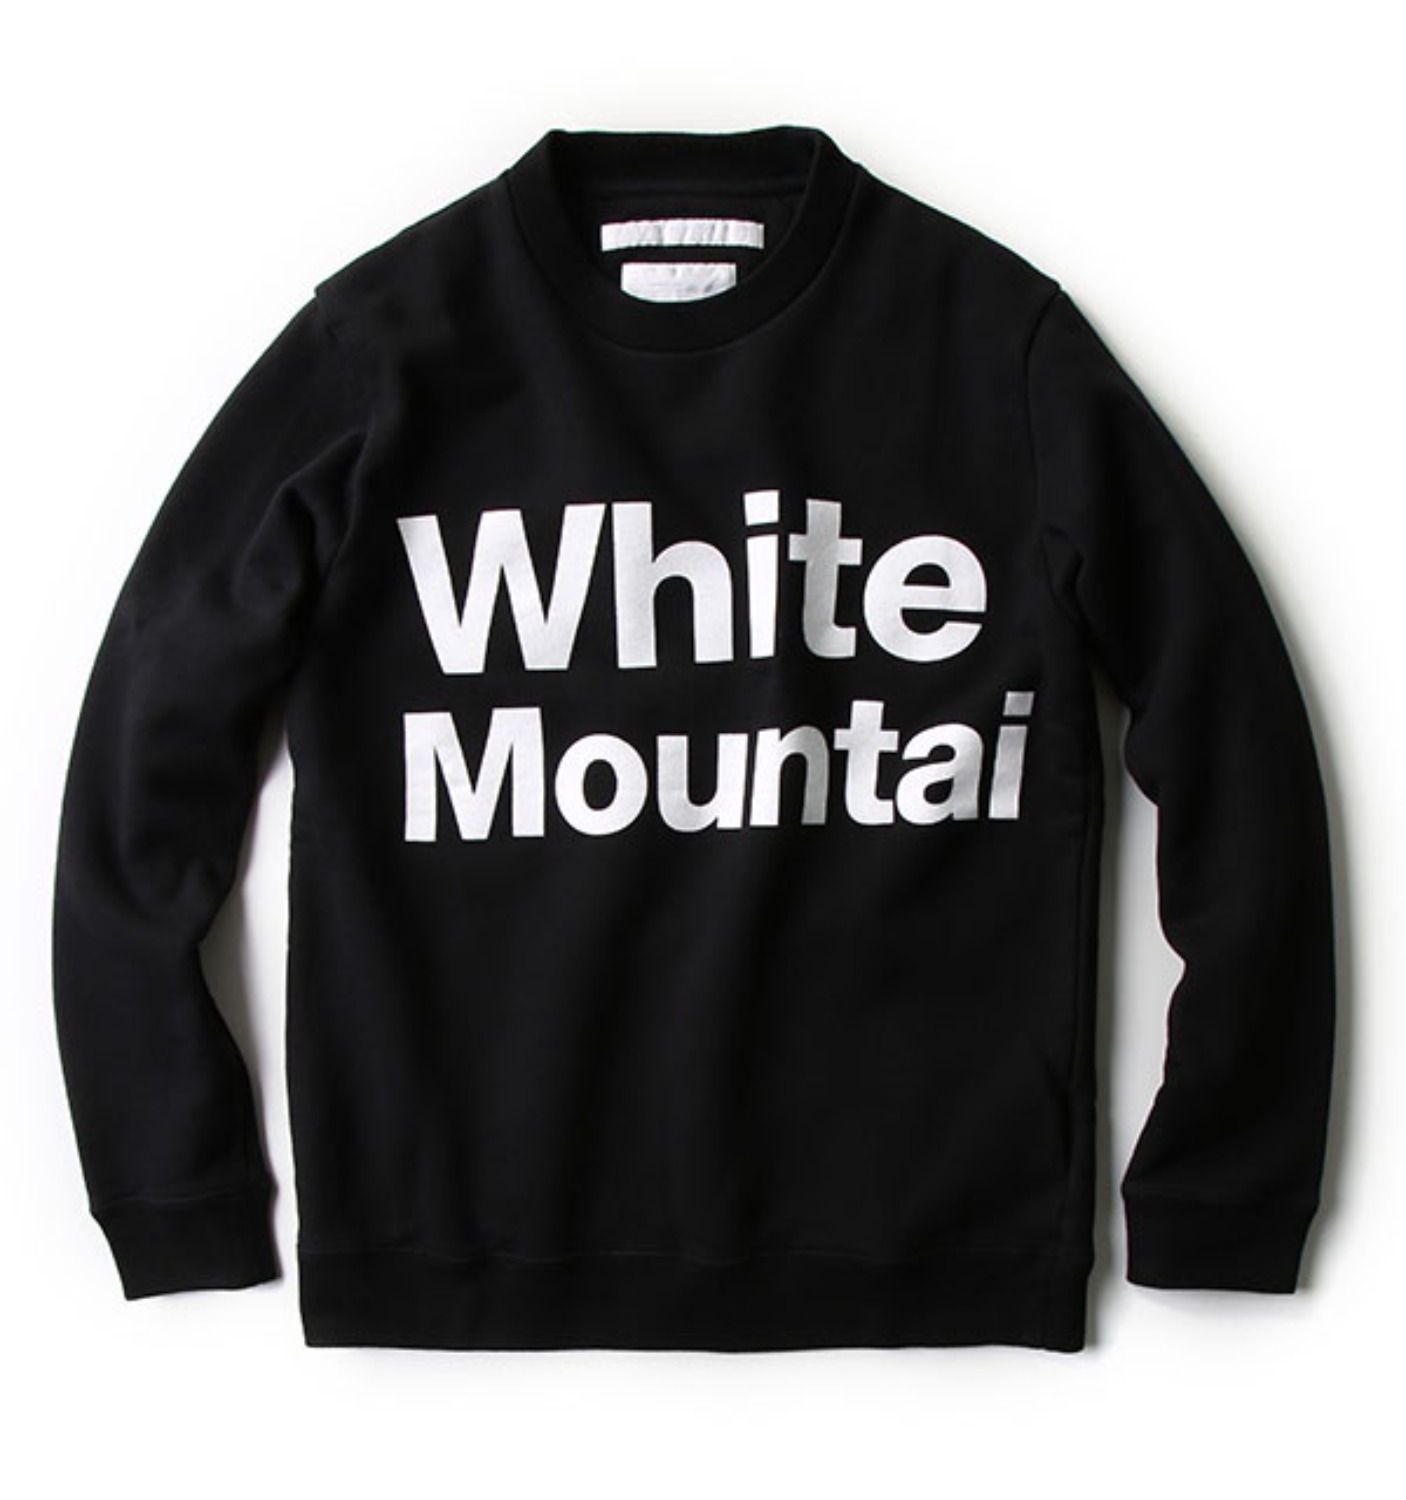 PRINTED LOGO SWEATSHIRT BLACK (WM1673528)